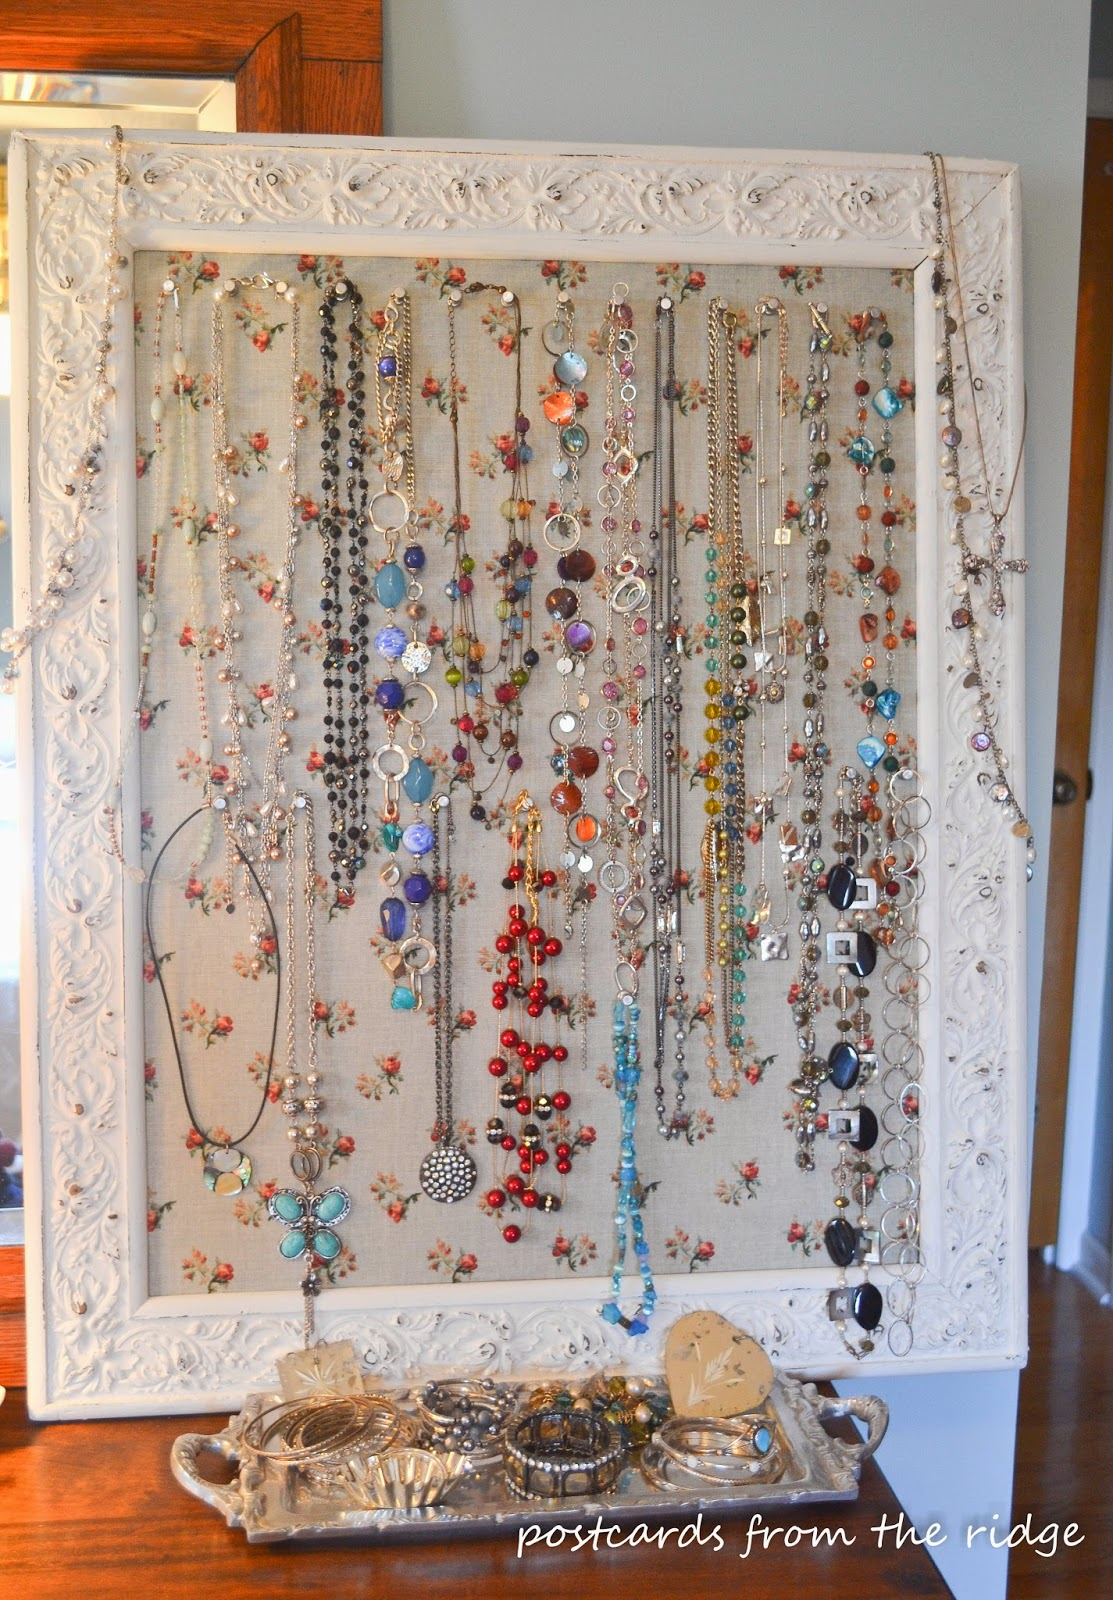 An old beat up frame turned into a jewelry board, plus other great ideas for jewelry organization.